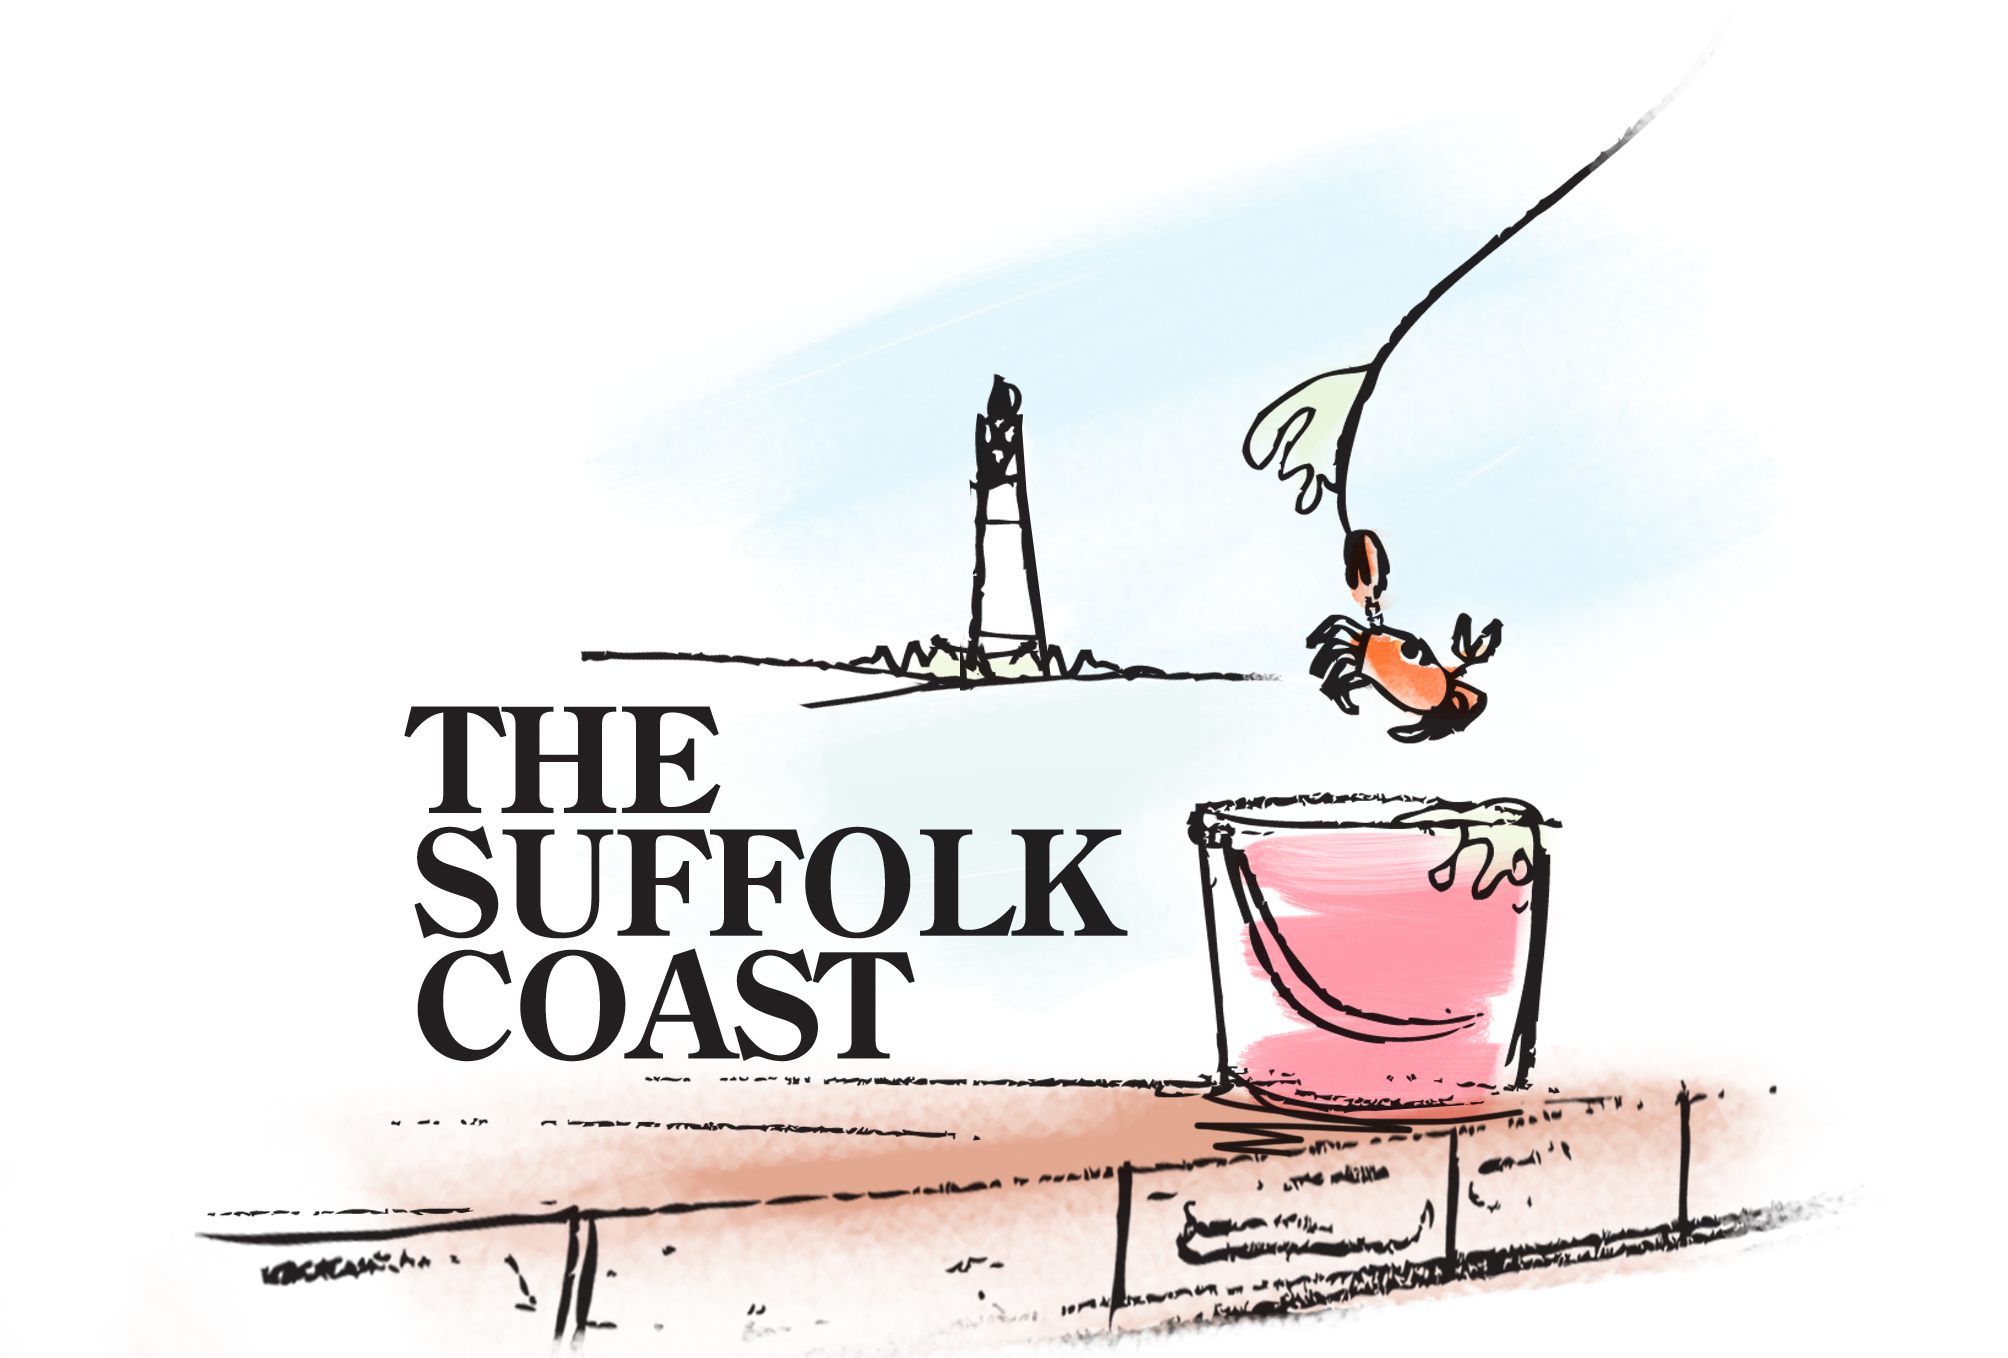 The Suffolk Coast & Activities